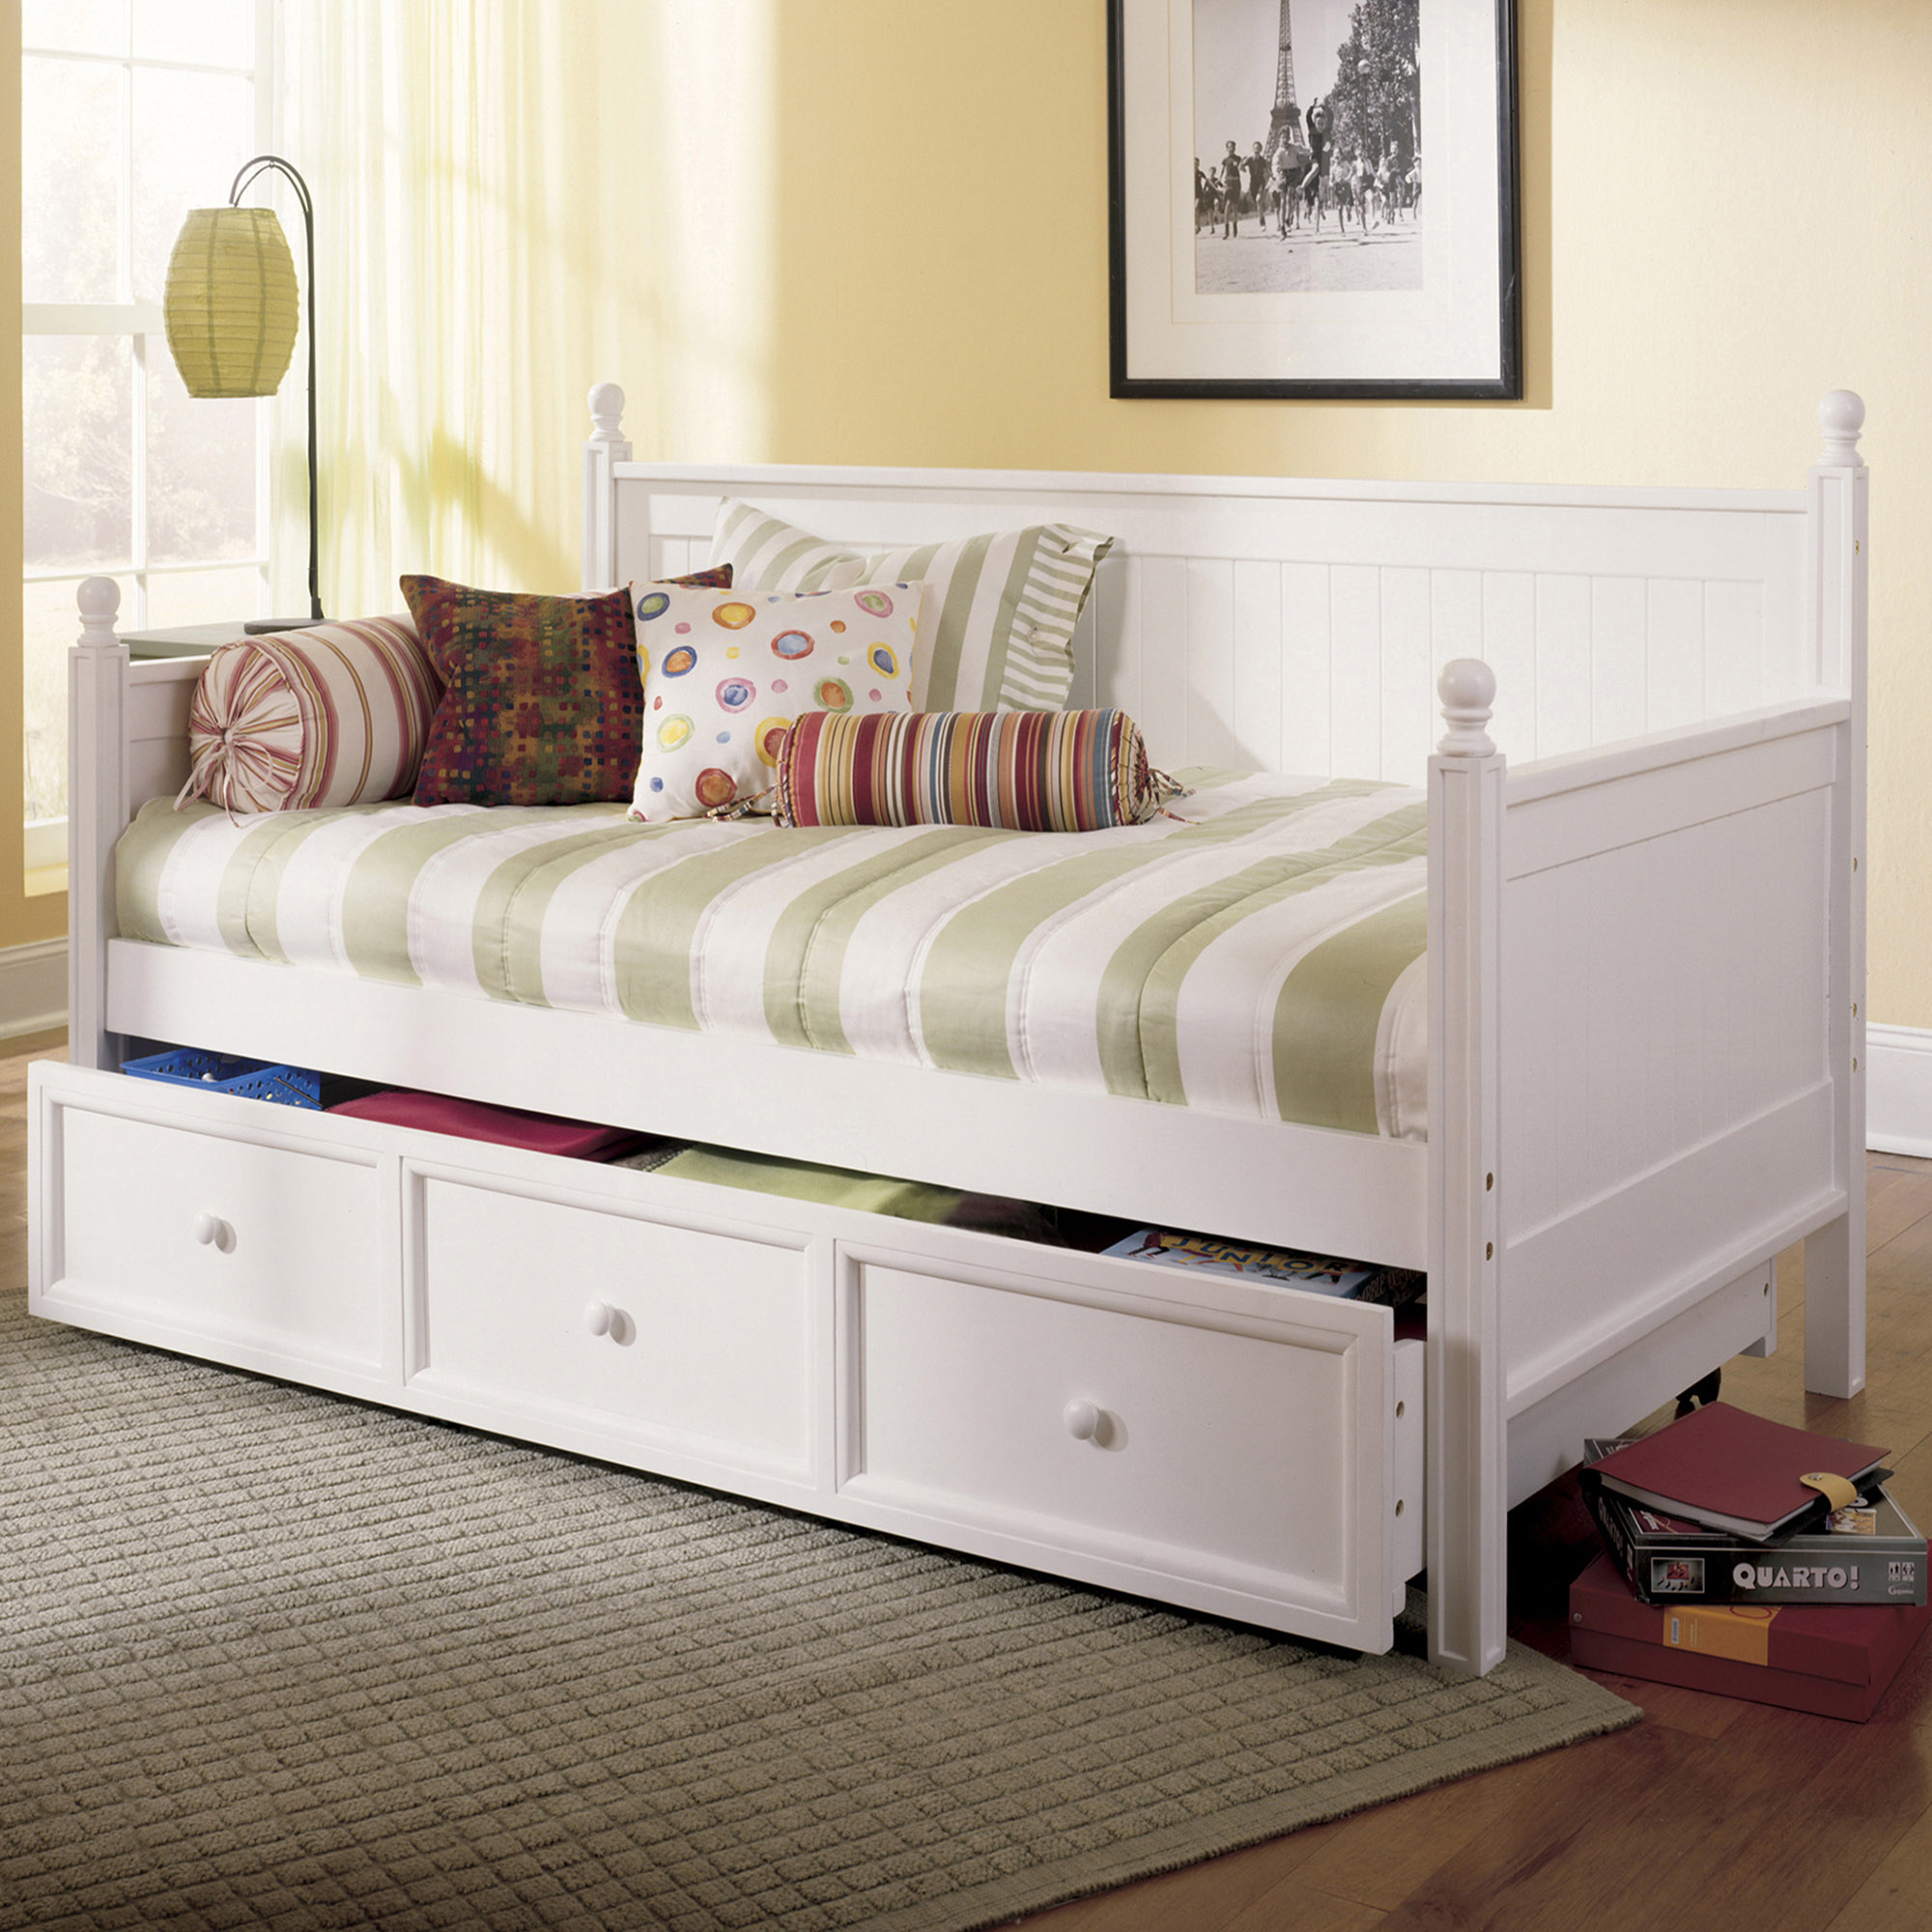 Fashion Bed Group Casey II Wood Twin Daybed with Roll Out Trundle Drawer, White